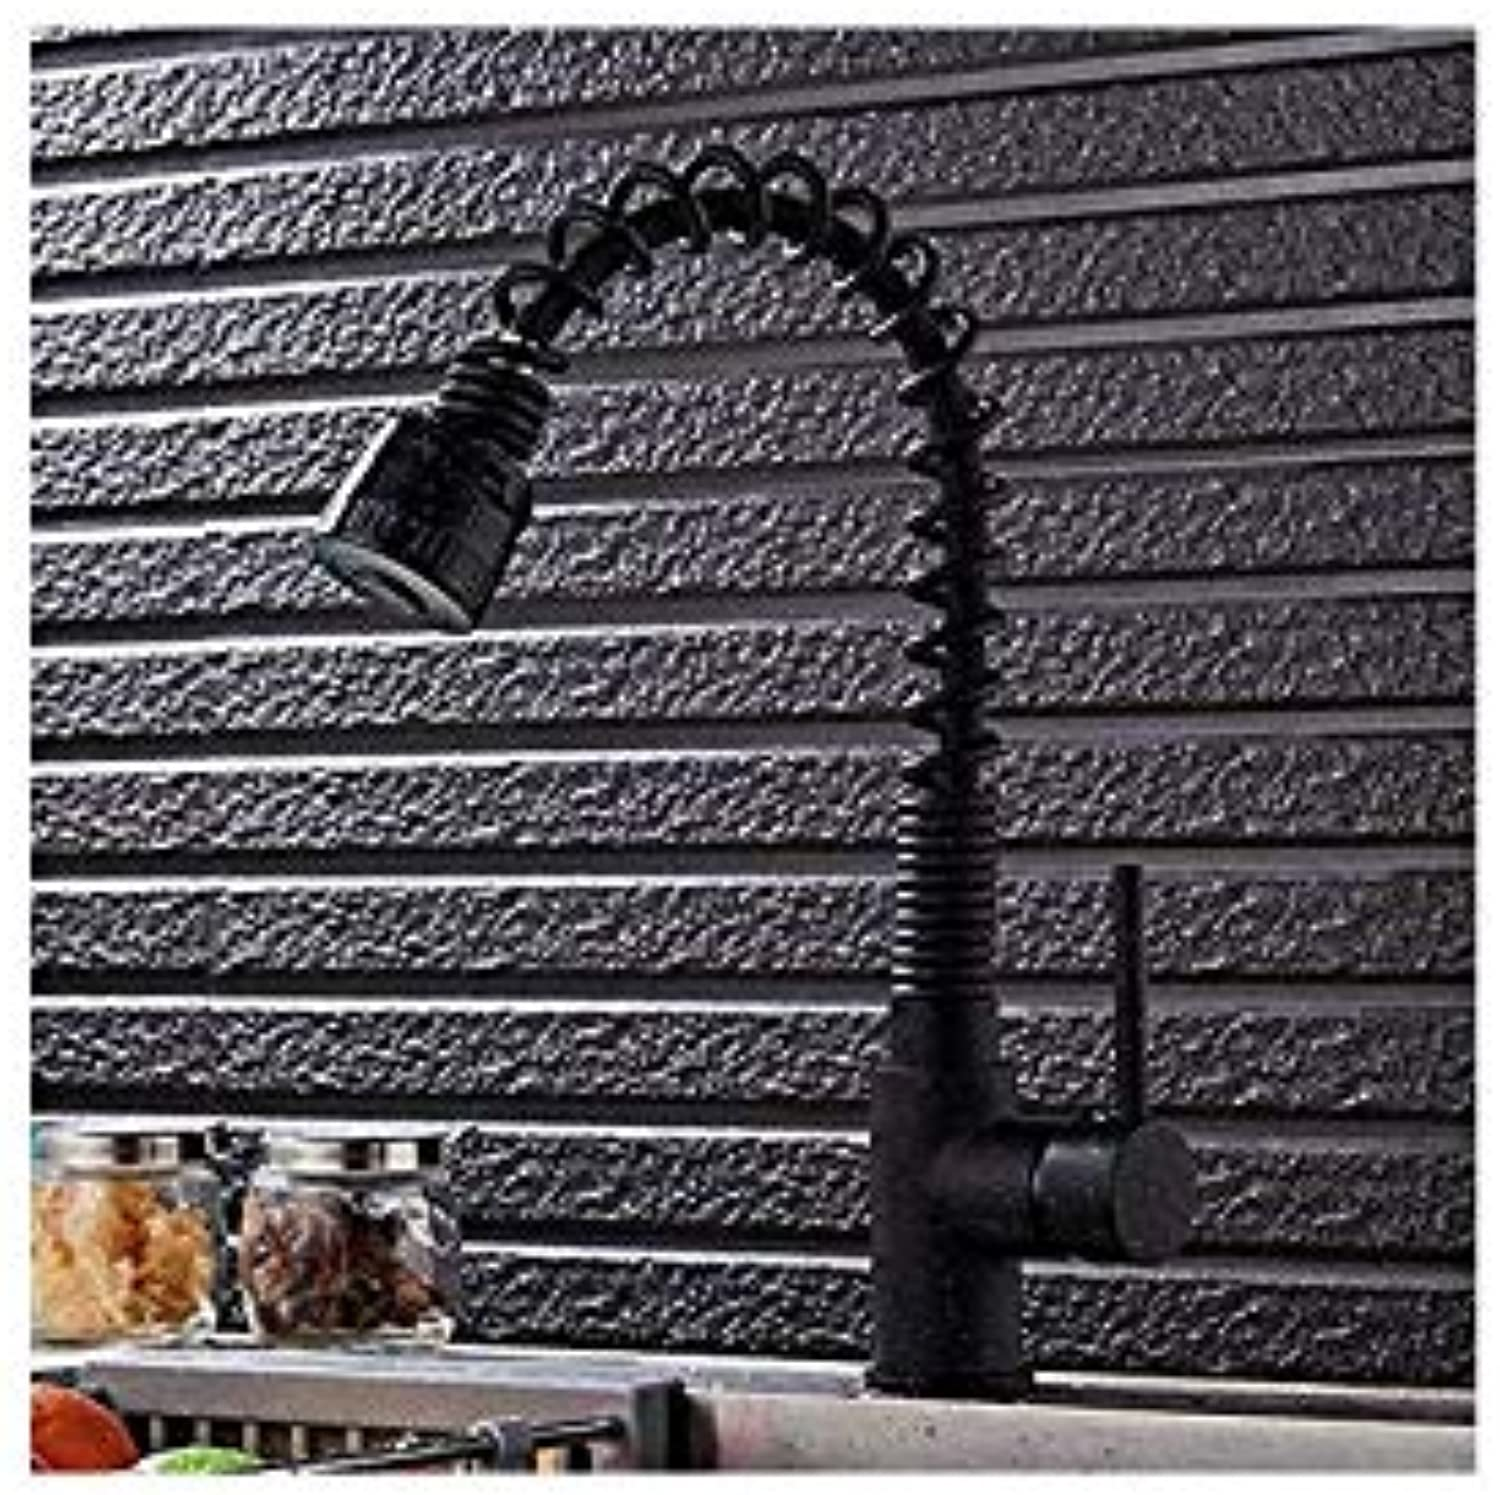 Water Taptaps Faucet Kitchen Sink Sink Kitchen Pull-Out Faucet Spring Sink Sink Hot and Cold Water Faucet